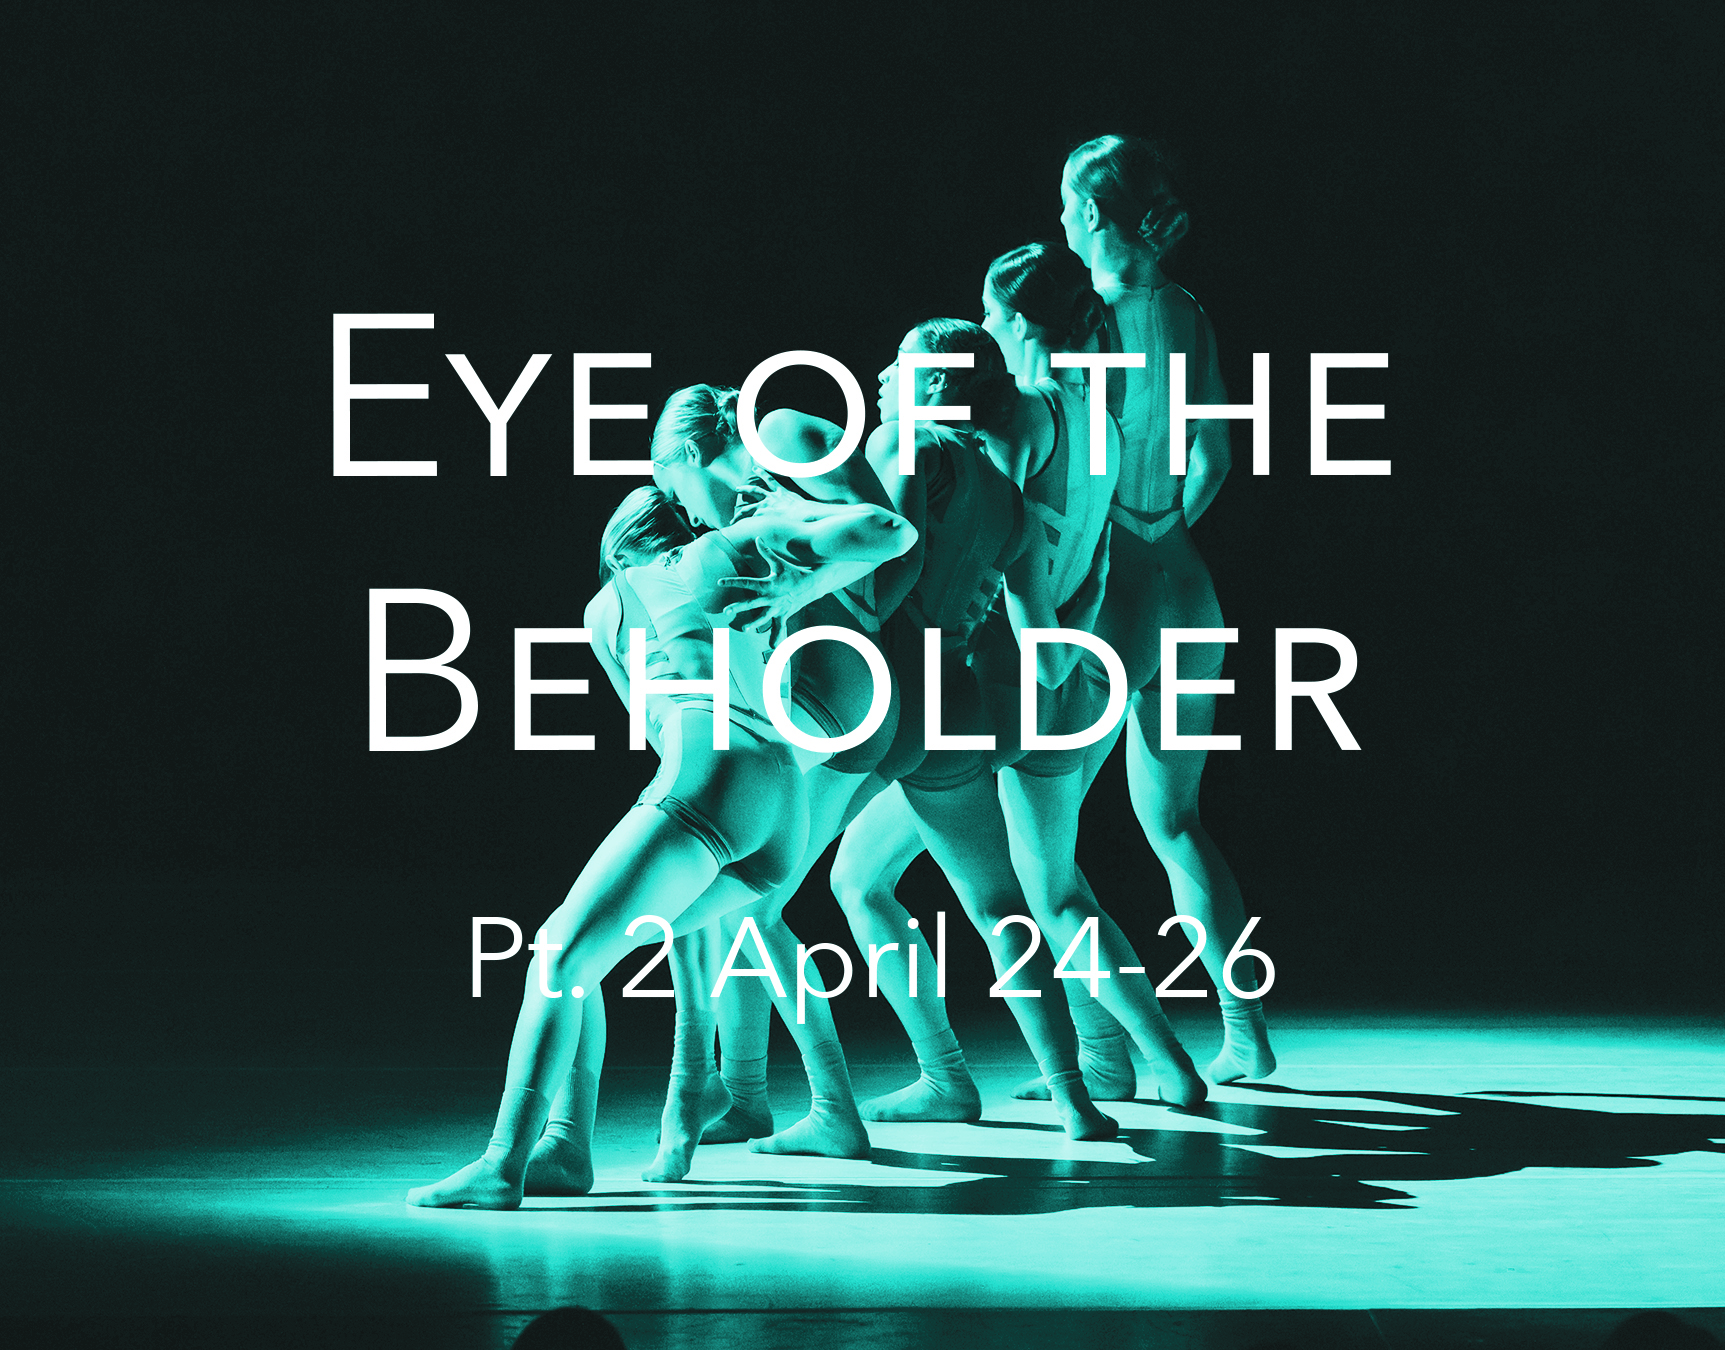 Eye of the Beholder (Pt. 2) - Friday, April 24 | 7:00pmSaturday, April 25 | 7:00pmSunday, April 26 | 3:00pmCould the innate definition of truth and justice lie solely in the eye of the beholder? Join EDD Artistic Director, Stephanie Pizzo, and the acclaimed EDD dancers as they investigate perspective...how it shapes judgment and impacts culture and society. This two-part, site-specific work, at two uniquely different venues, Oakland University's Varner Recital Hall and the Light Box in Detroit, reimagines what we think of as performance space. Watch contemporary dance transform both environments to create two unique perspectives with a common theme. Join in the artistic process for an interactive experience that will impact the perspective of Part 2 at the Light Box. The program also features the mesmerizing premieres of dances created by renowned choreographers, Christian Denice and Baira.$20 General Admission (one price only)Light Box8641 Linwood St, Detroit, MI 48206